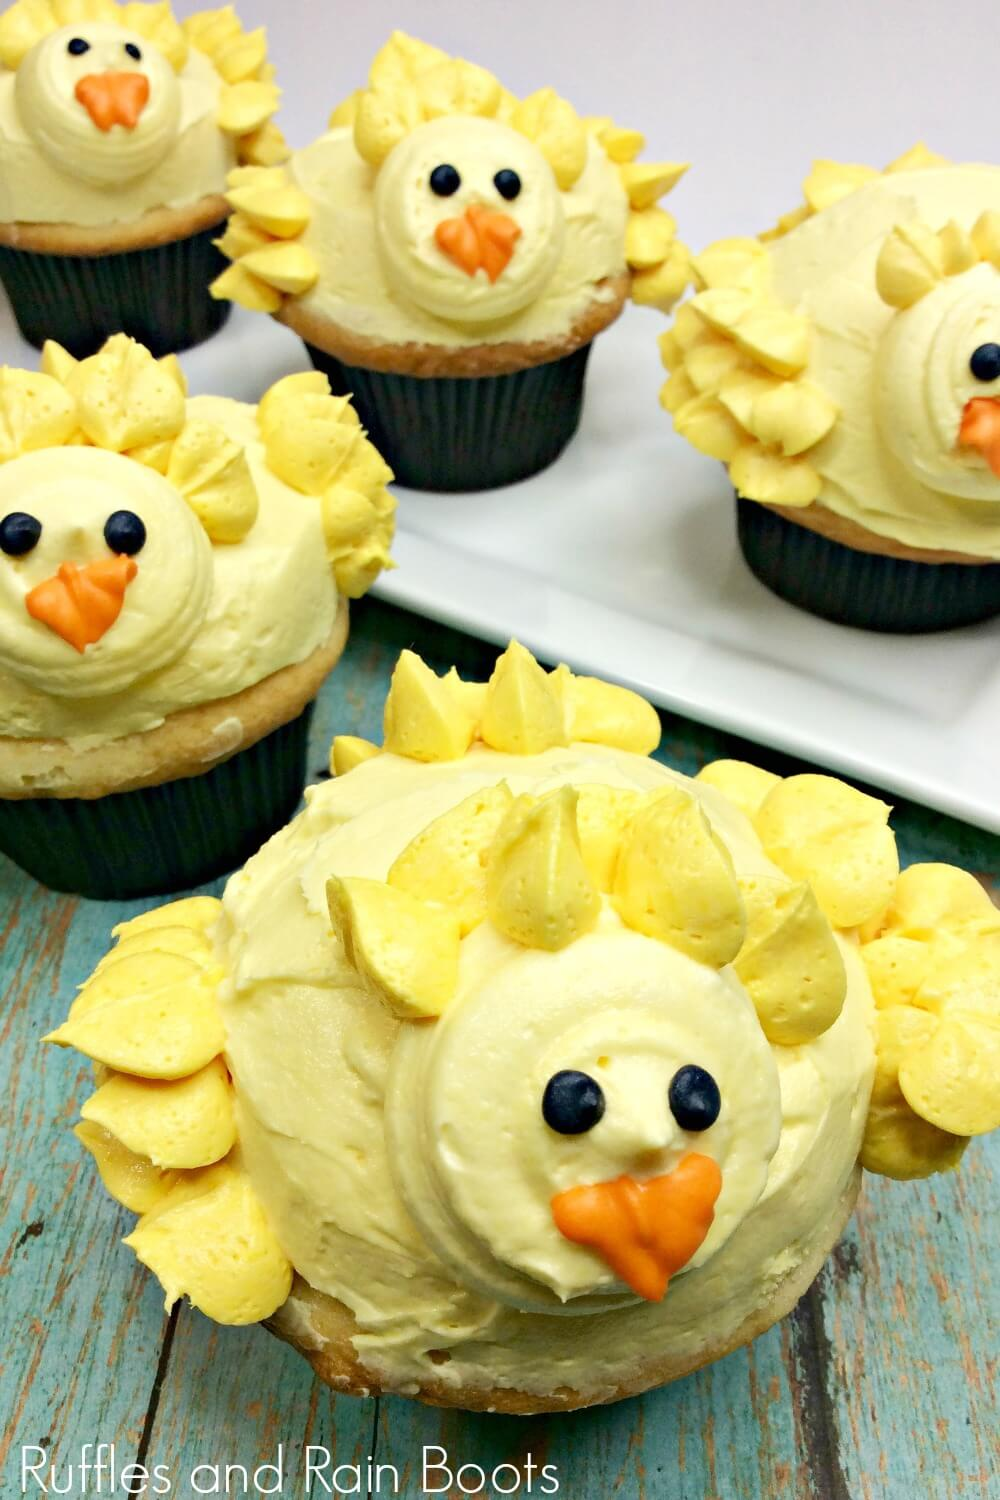 chick cupcakes for Easter on green table